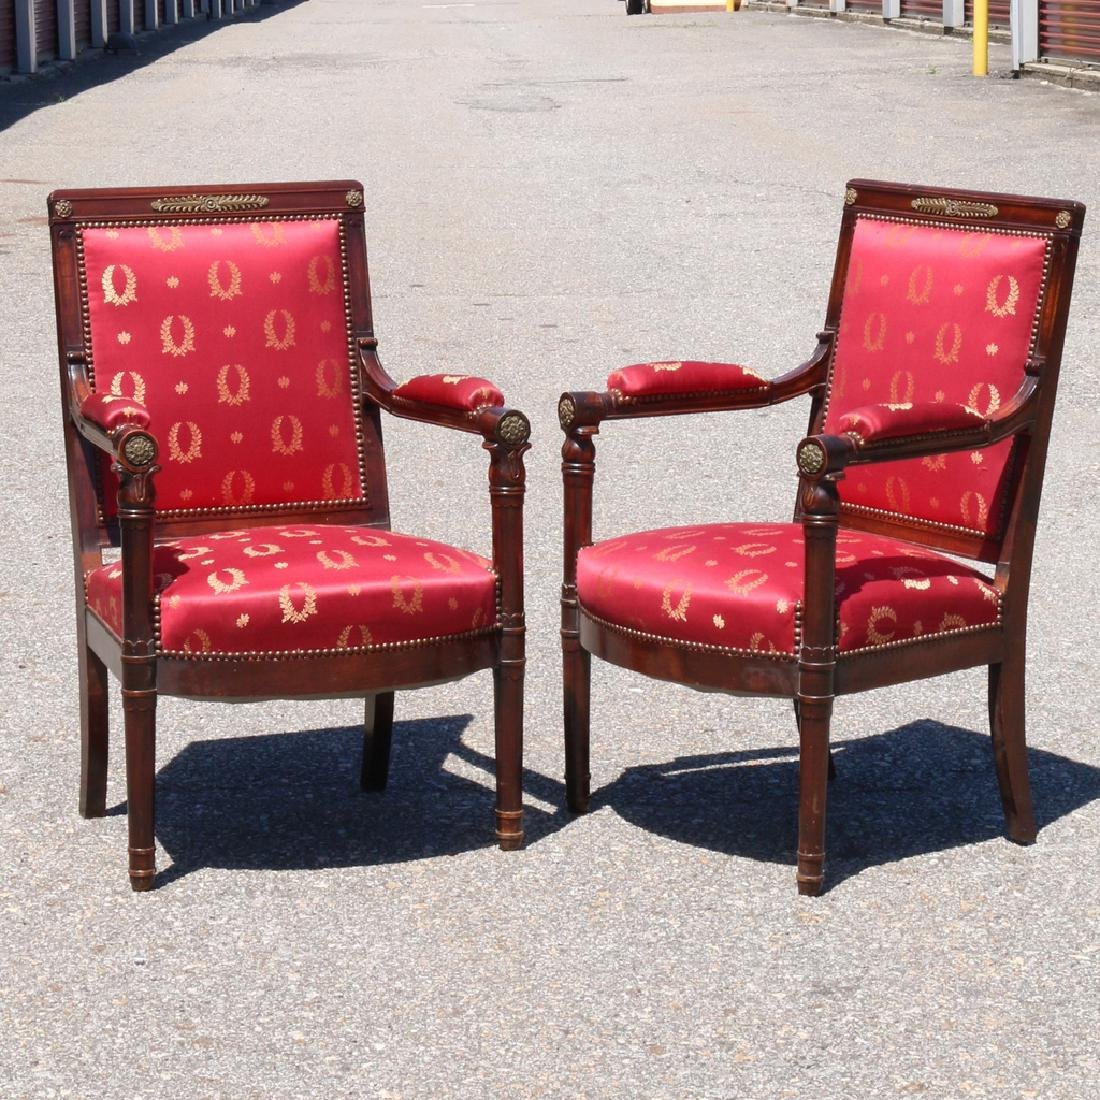 PAIR ENGLISH REGENCY-STYLE OPEN ARMCHAIRS